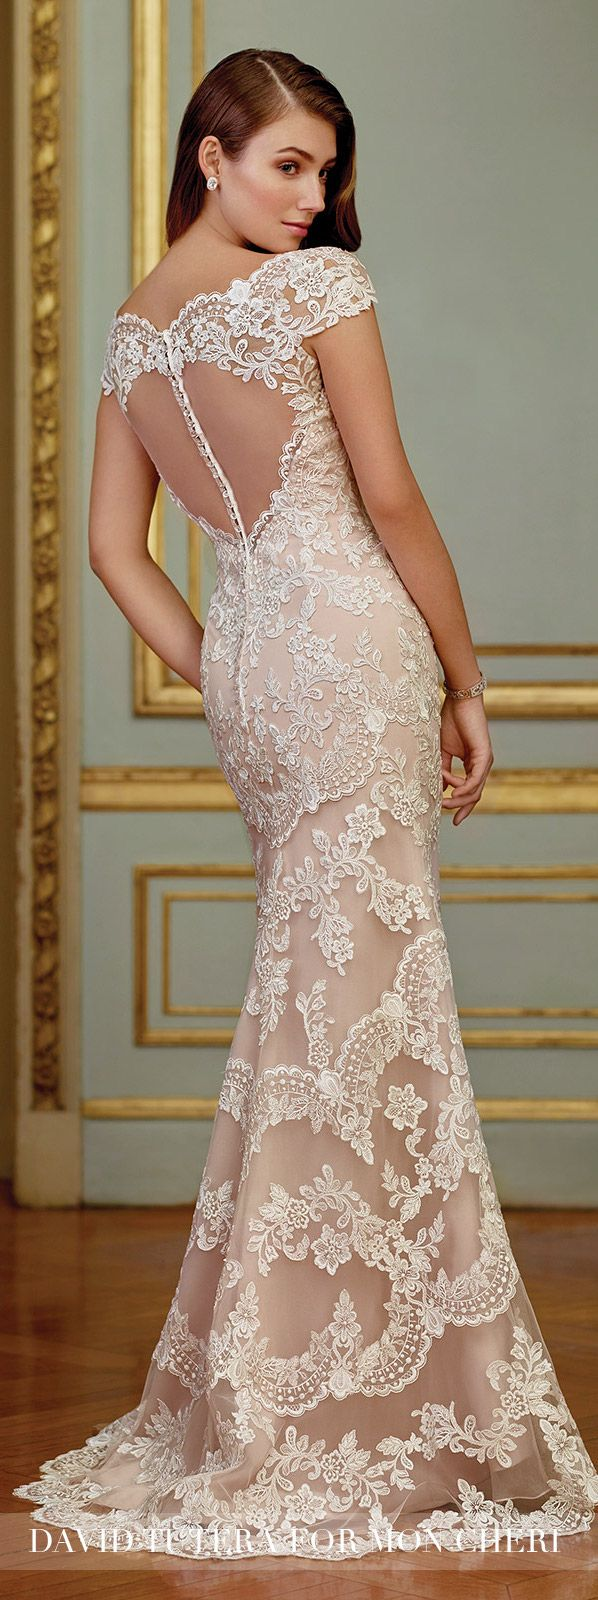 Vintage Embroidered Lace Fit & Flare Wedding Dress- 117291 Zerrin ...